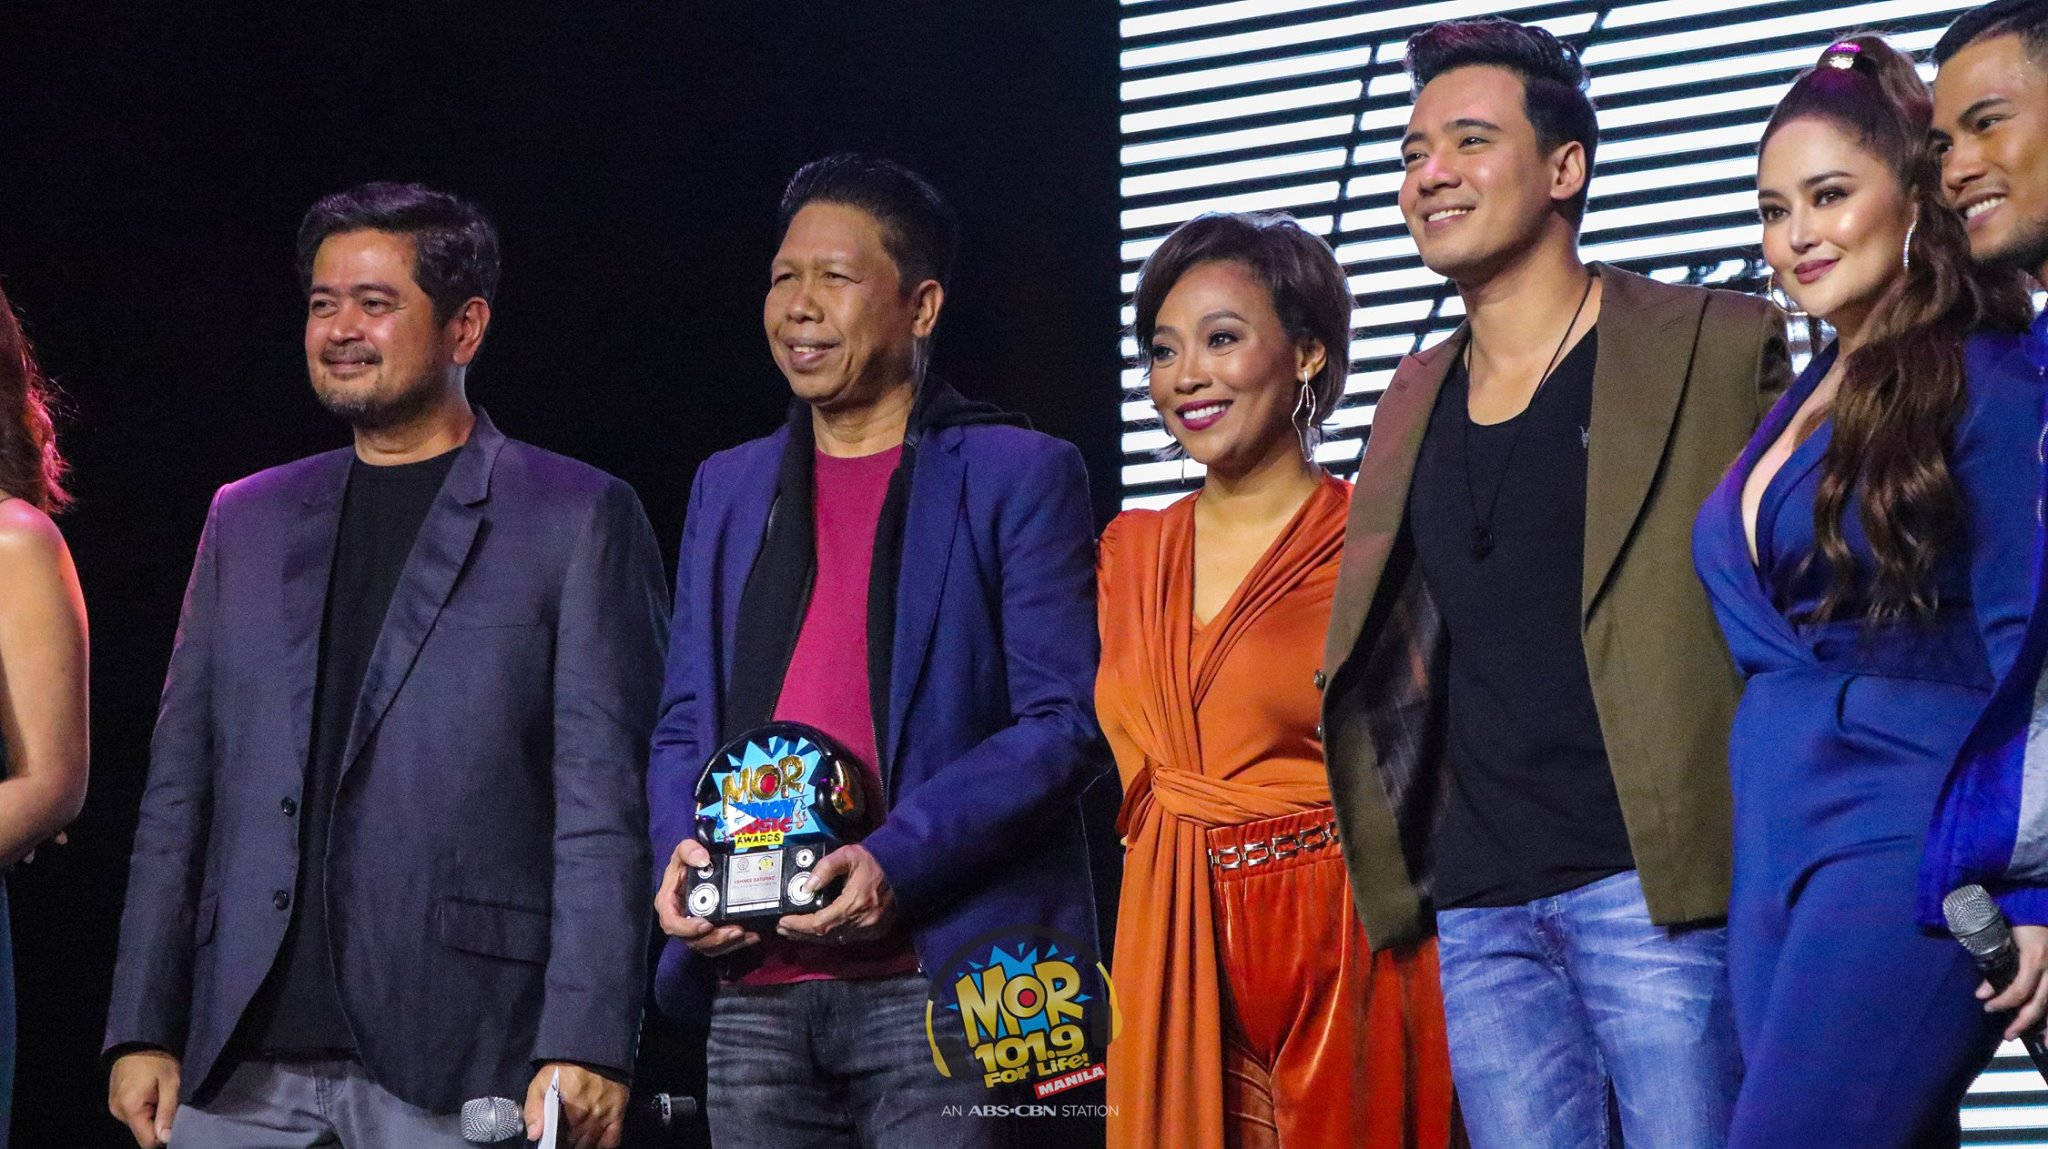 Station head Mars Ocampo (leftmost) at the MOR Pinoy Music Awards 2018 with OPM Lifetime Achievement awardee Vehnee Saturno, Jaya, Erik Santos, Jessa Zaragoza and Bugoy Drilon